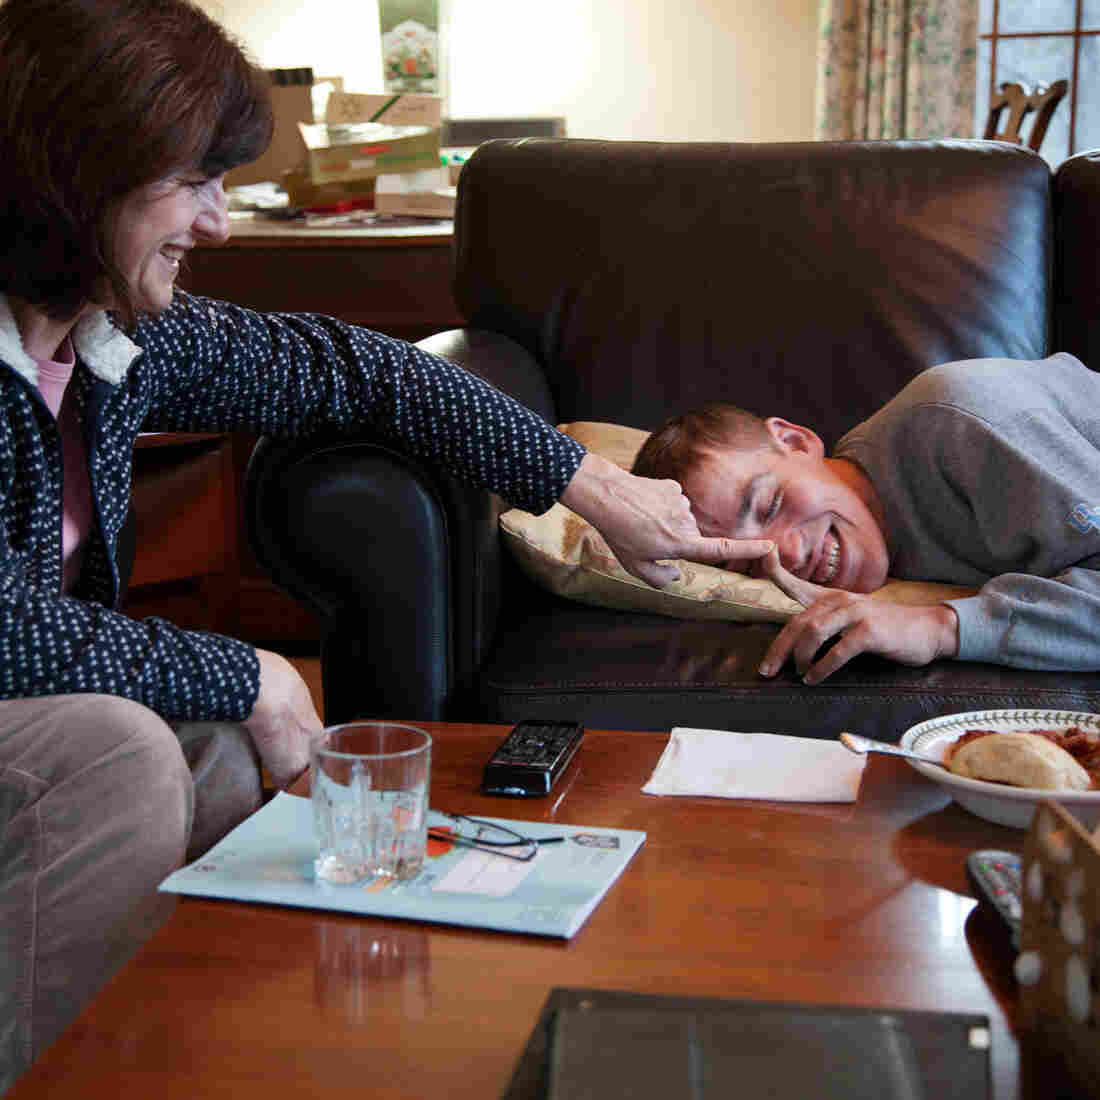 Katie Clapp shares a laugh with her son Andy Tranfaglia, 25, at their home in West Newbury, Mass. Andy has a rare genetic condition called fragile X syndrome.